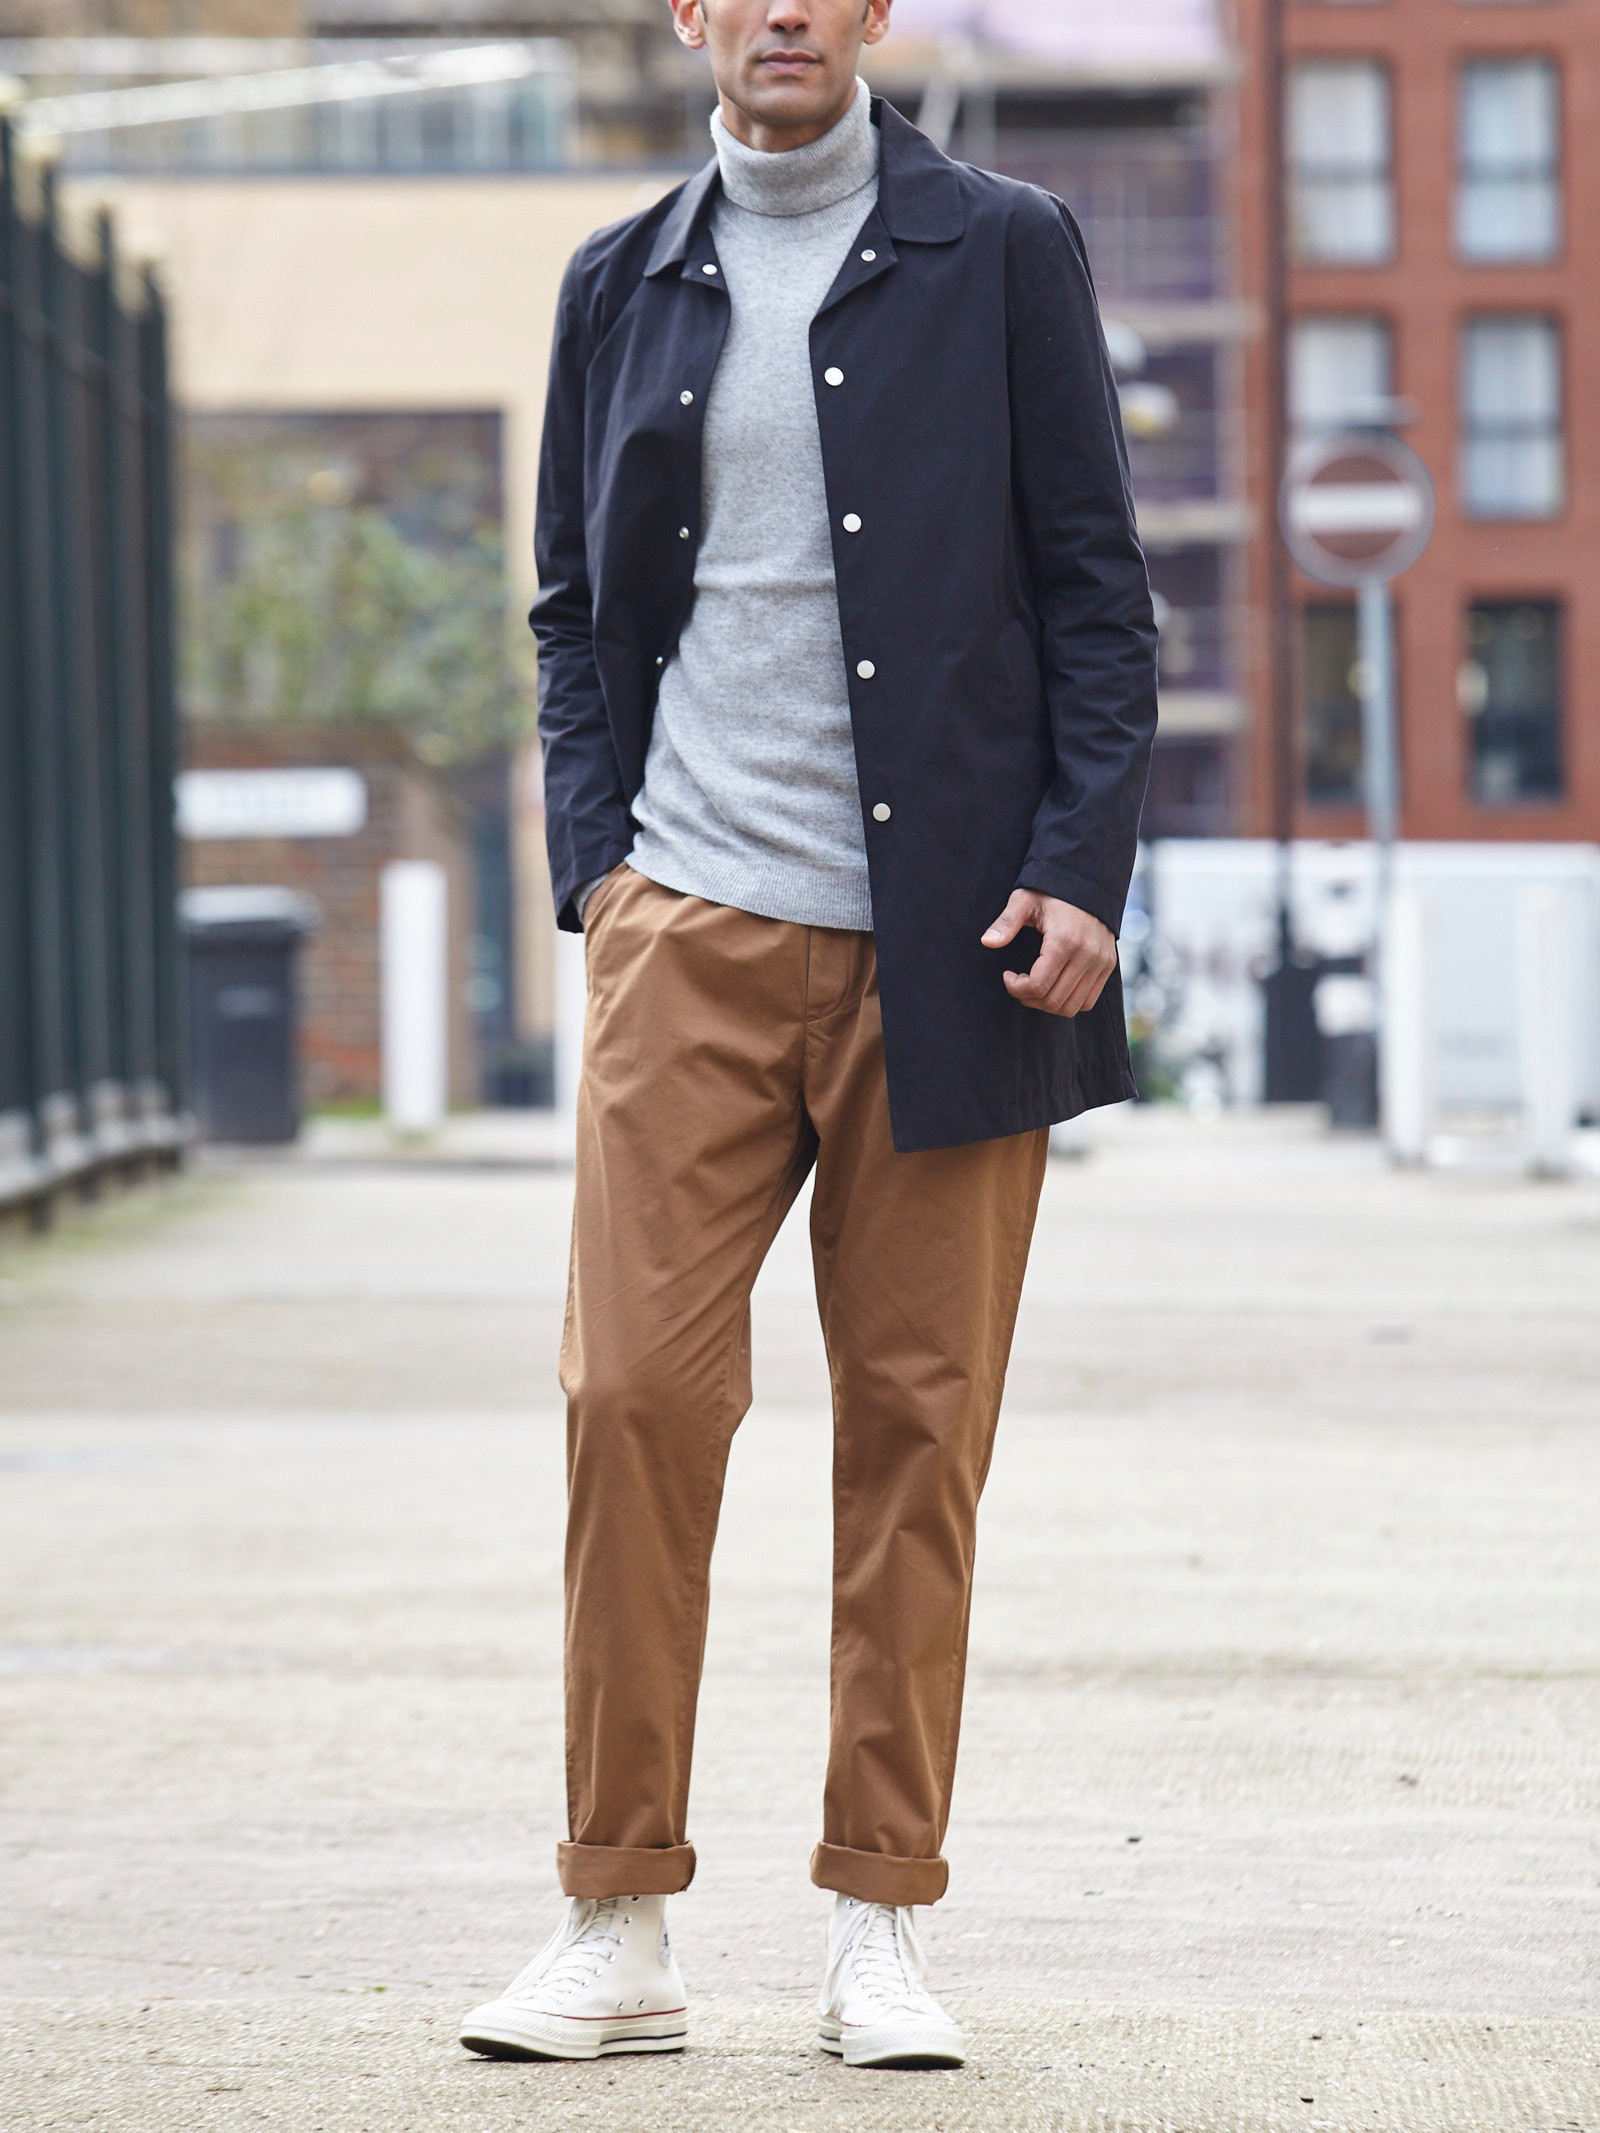 Men's outfit idea for 2021 with navy trench coat, grey lightweight rollneck jumper, stone chinos, converse. Suitable for spring, autumn and winter.